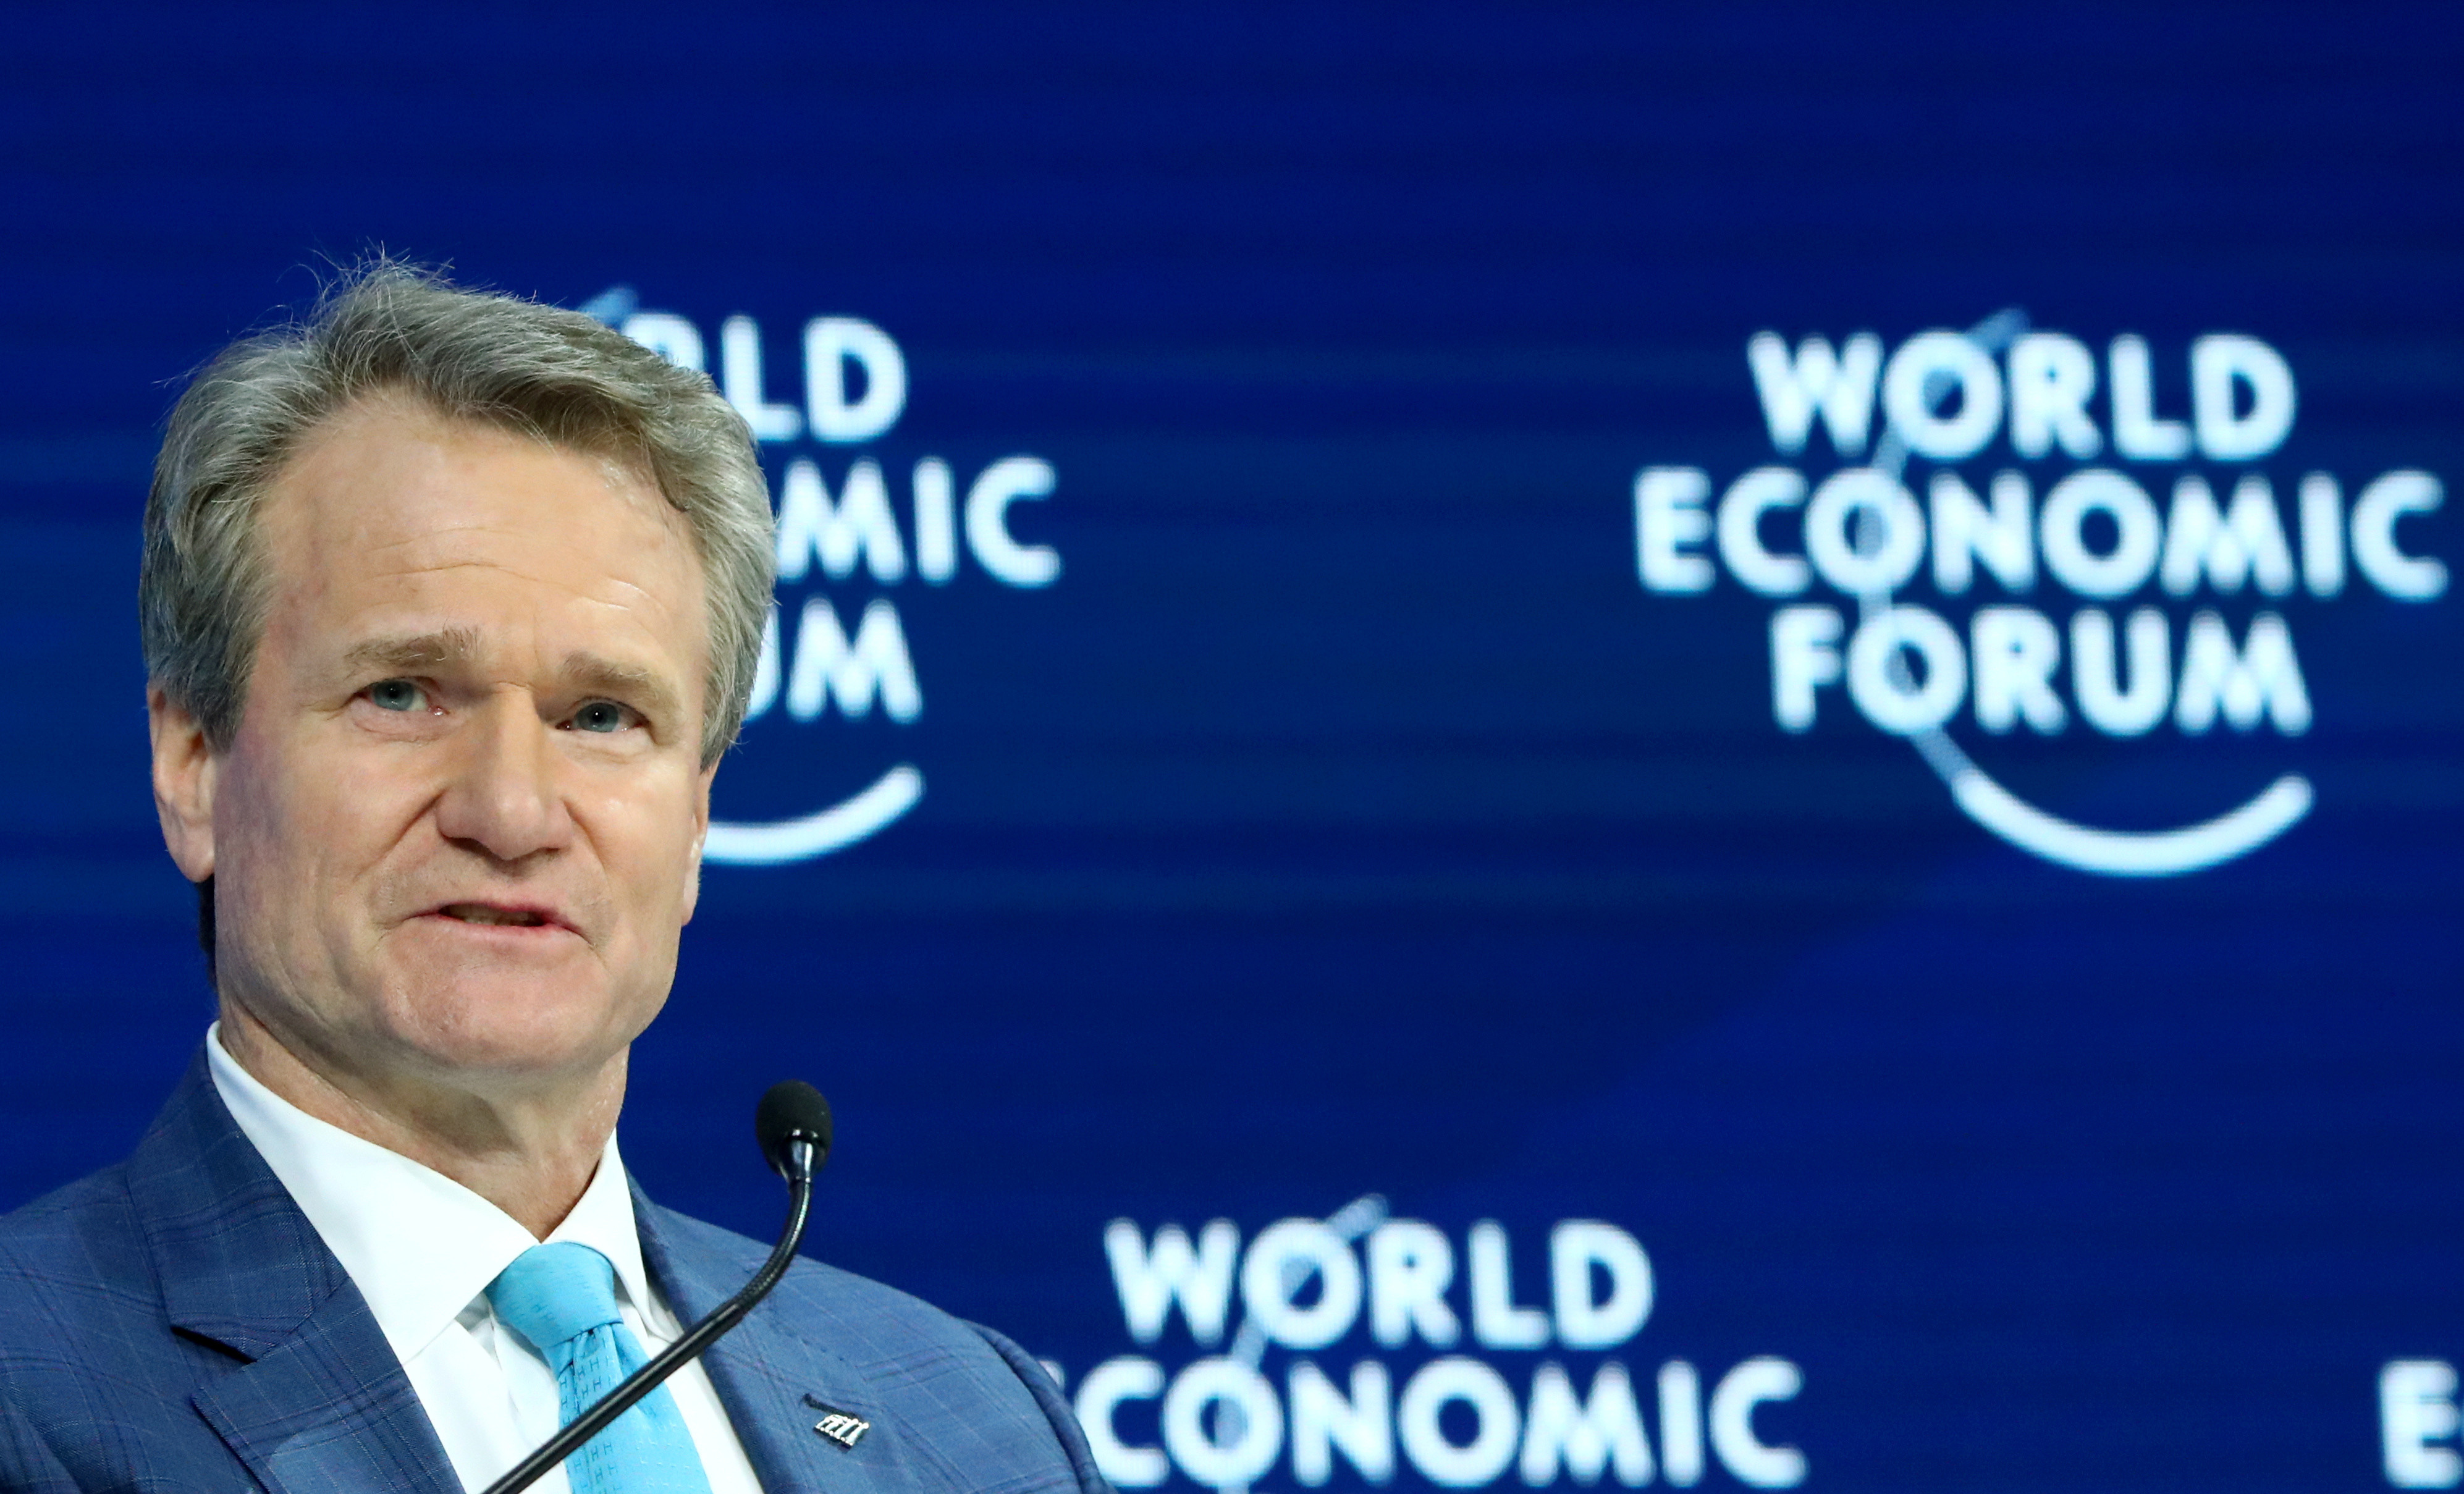 Chairman and CEO of Bank of America Brian T. Moynihan attends a session at the 50th World Economic Forum (WEF) annual meeting in Davos, Switzerland, January 21, 2020. REUTERS/Denis Balibouse - RC2HKE9W9ELH